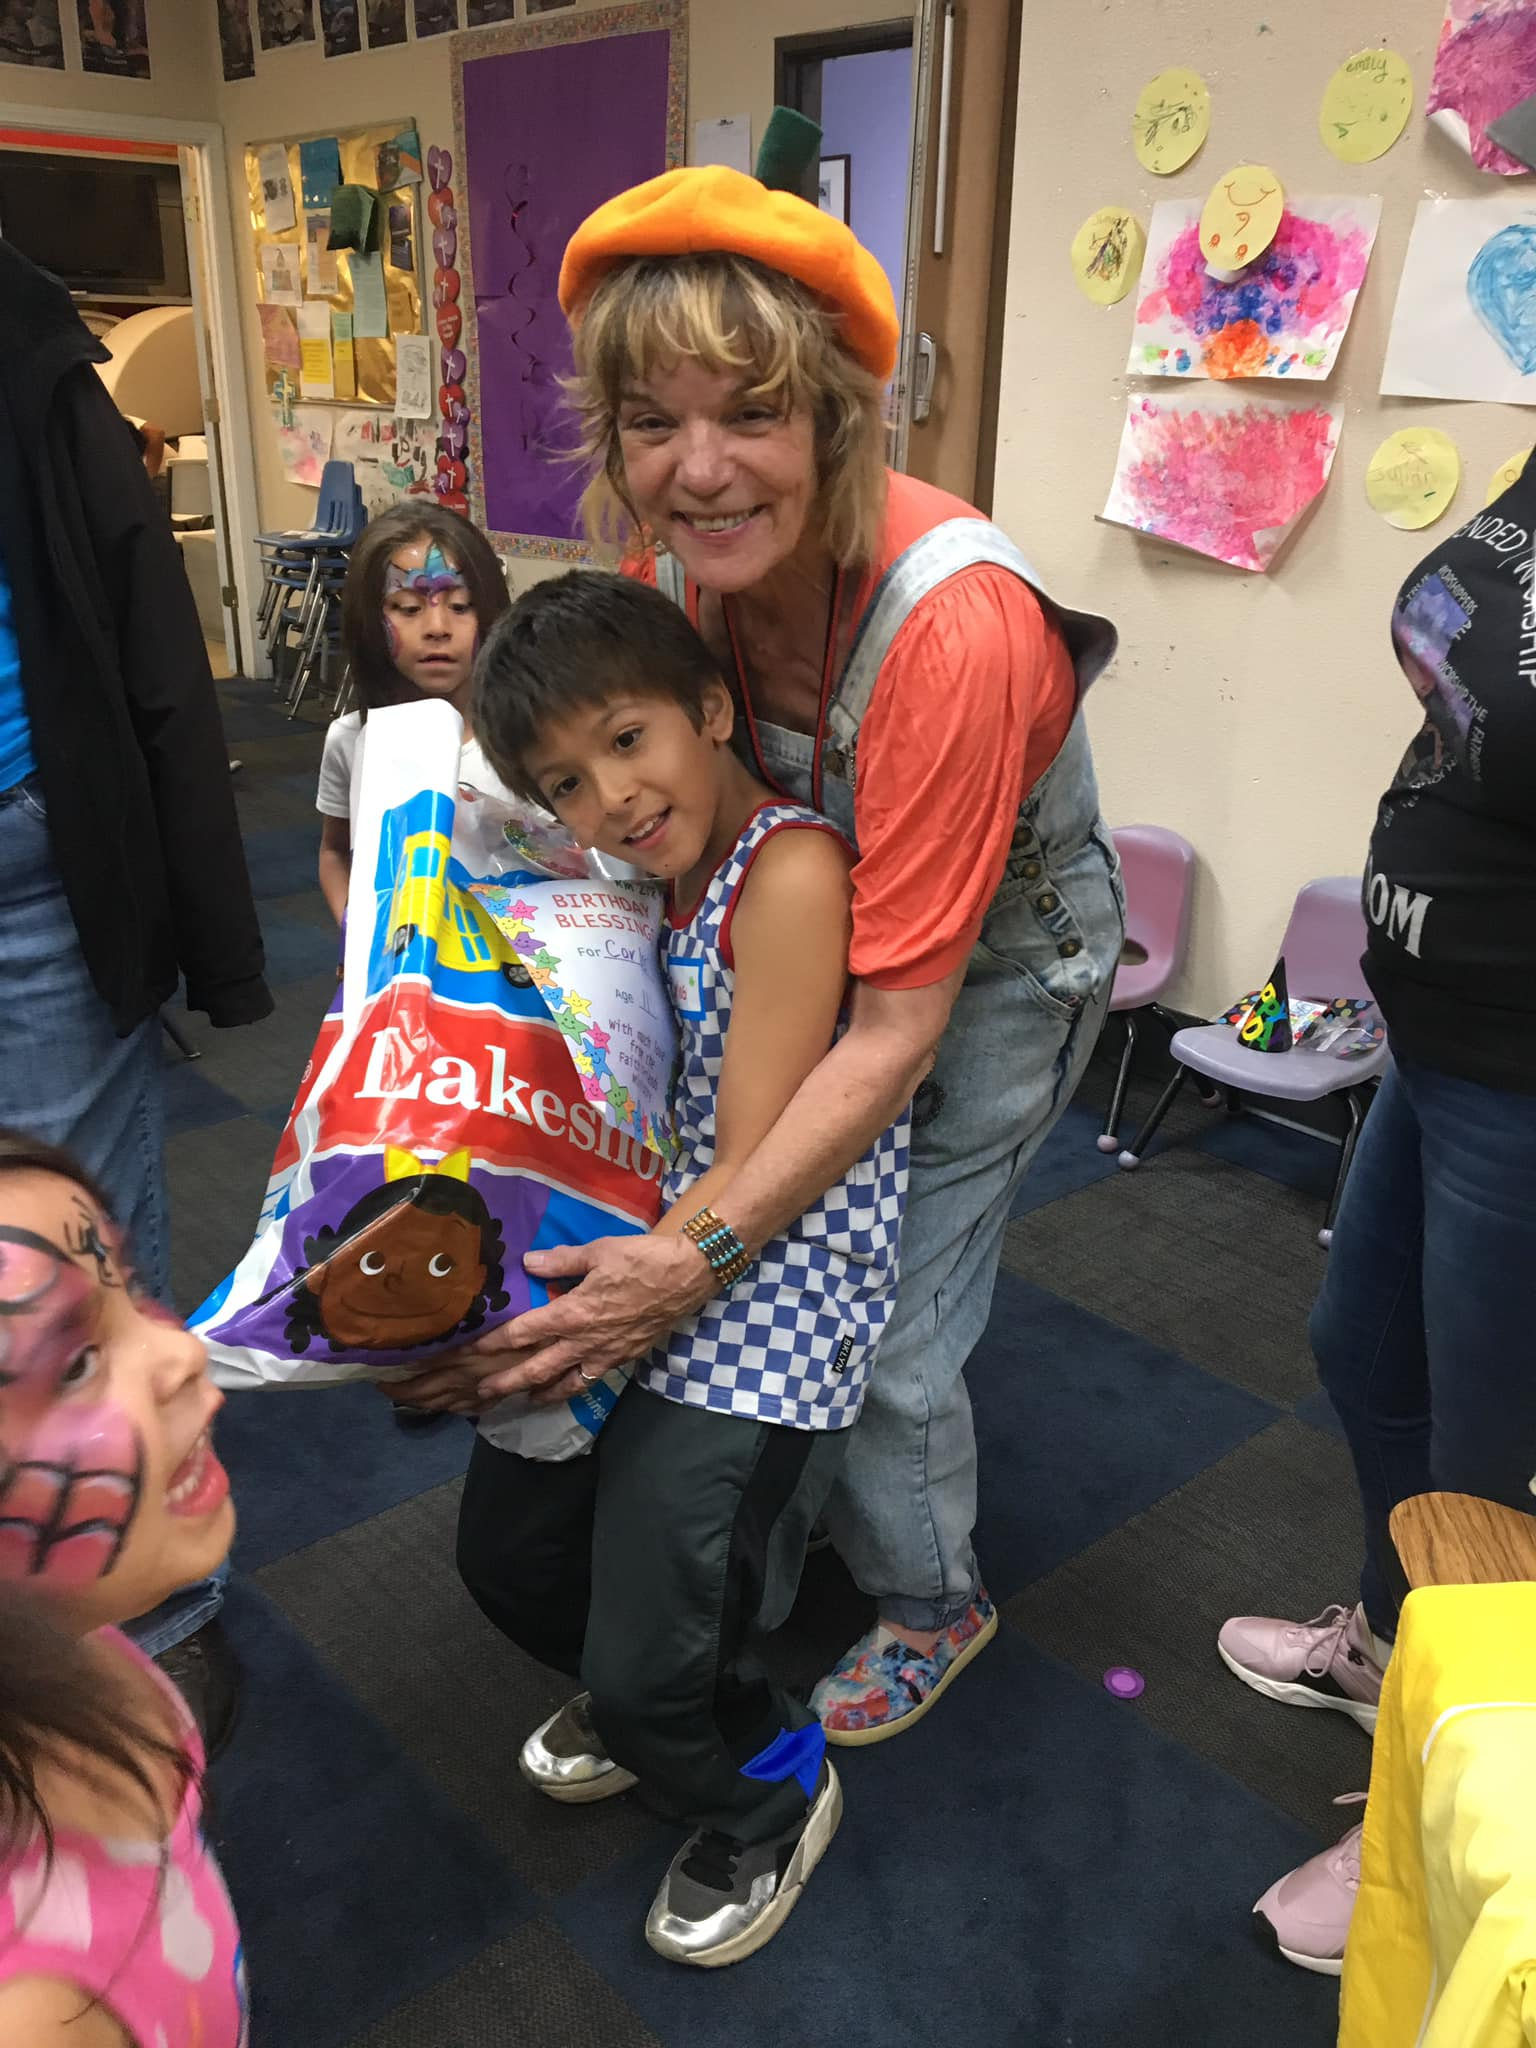 FAITH FRIENDS CHILDREN'S OUTREACH MINISTRY HOSTS BIRTHDAY CELEBRATION FOR HOMELESS CHILDREN